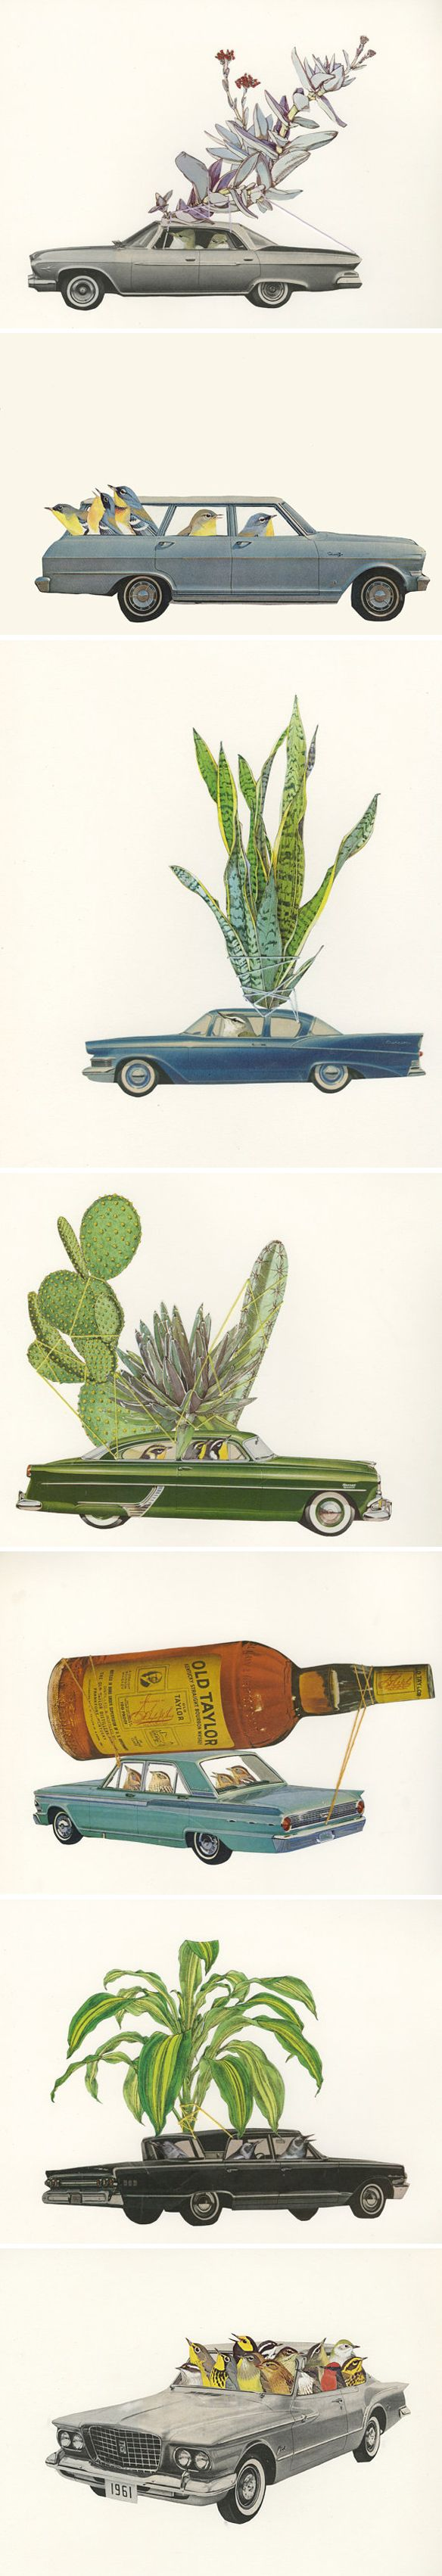 In love with artist Vivienne Strauss' road-tripping, plant-toting birds!